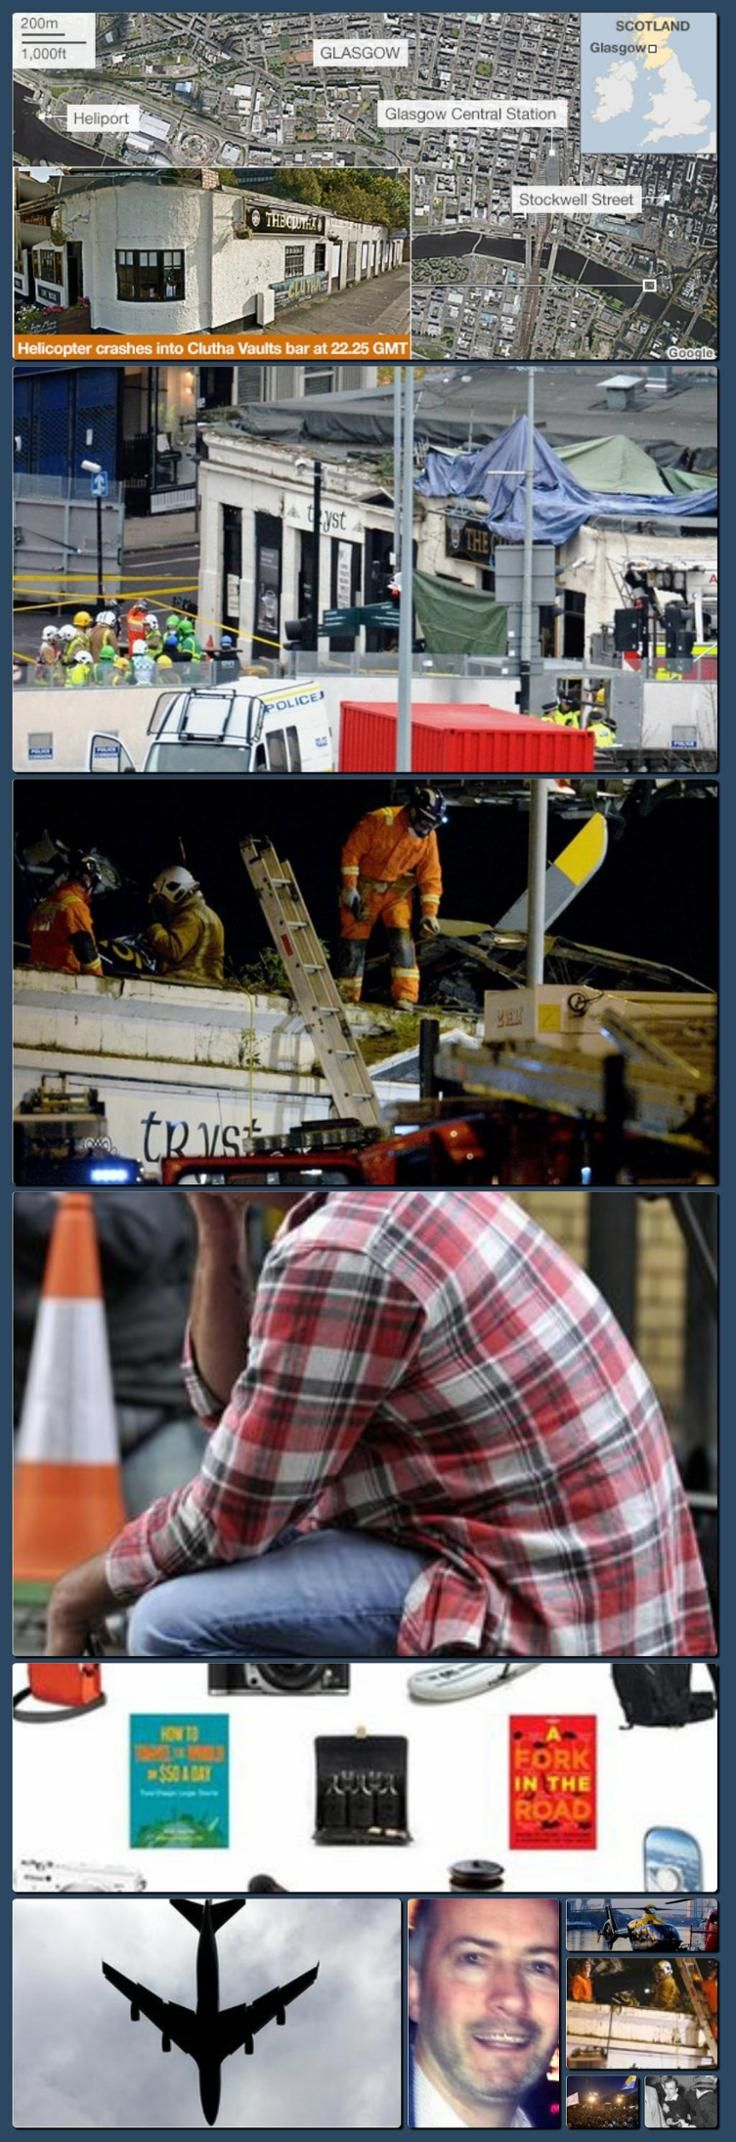 BBC News - Glasgow helicopter crash: Police name dead man [Collage made with one click using http://pagecollage.com] #pagecollage